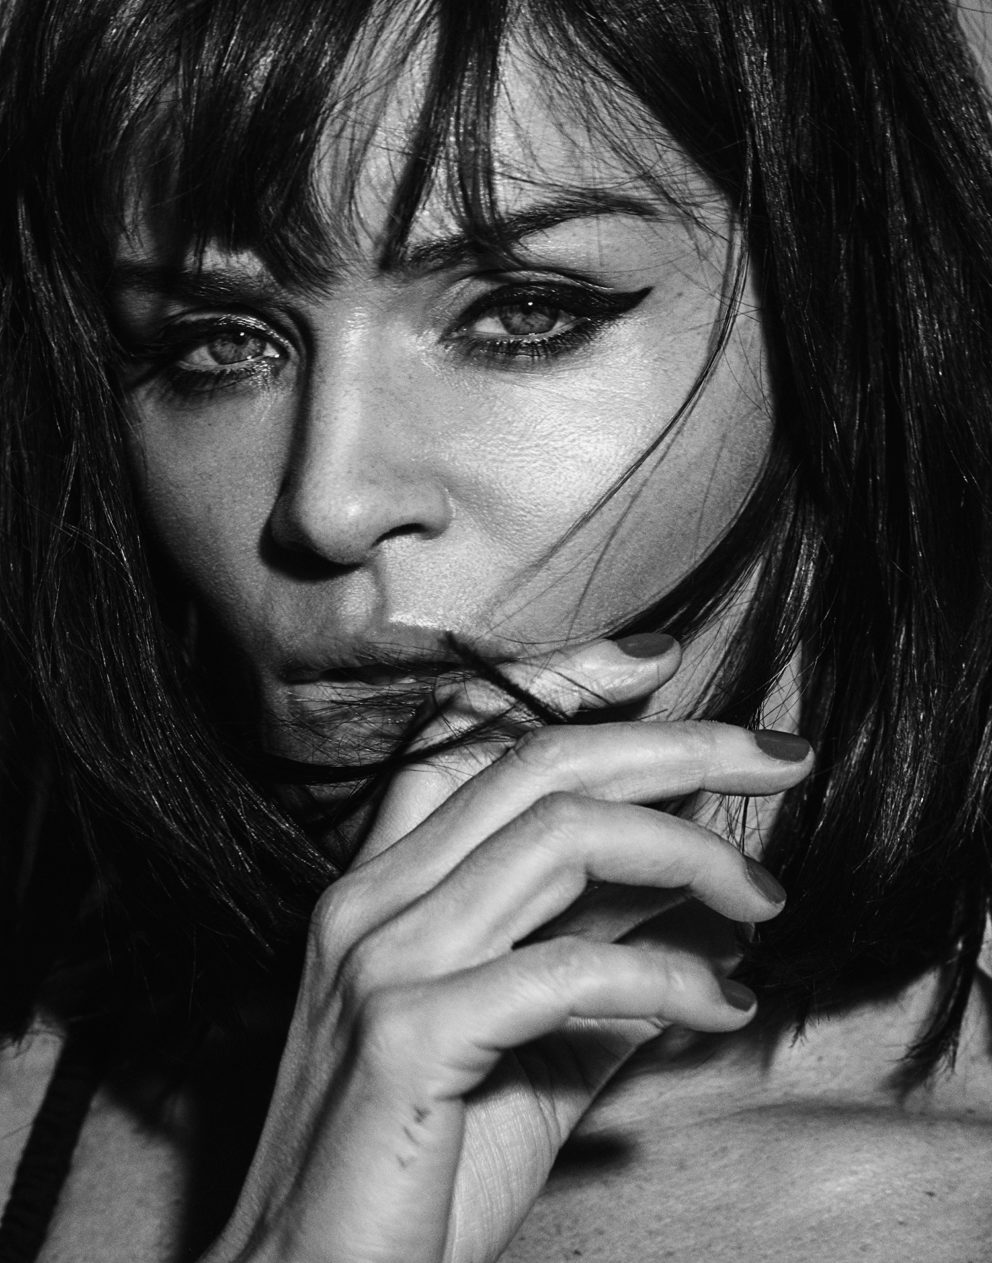 171128 Helena Christensen By Christian Hogstedt 16